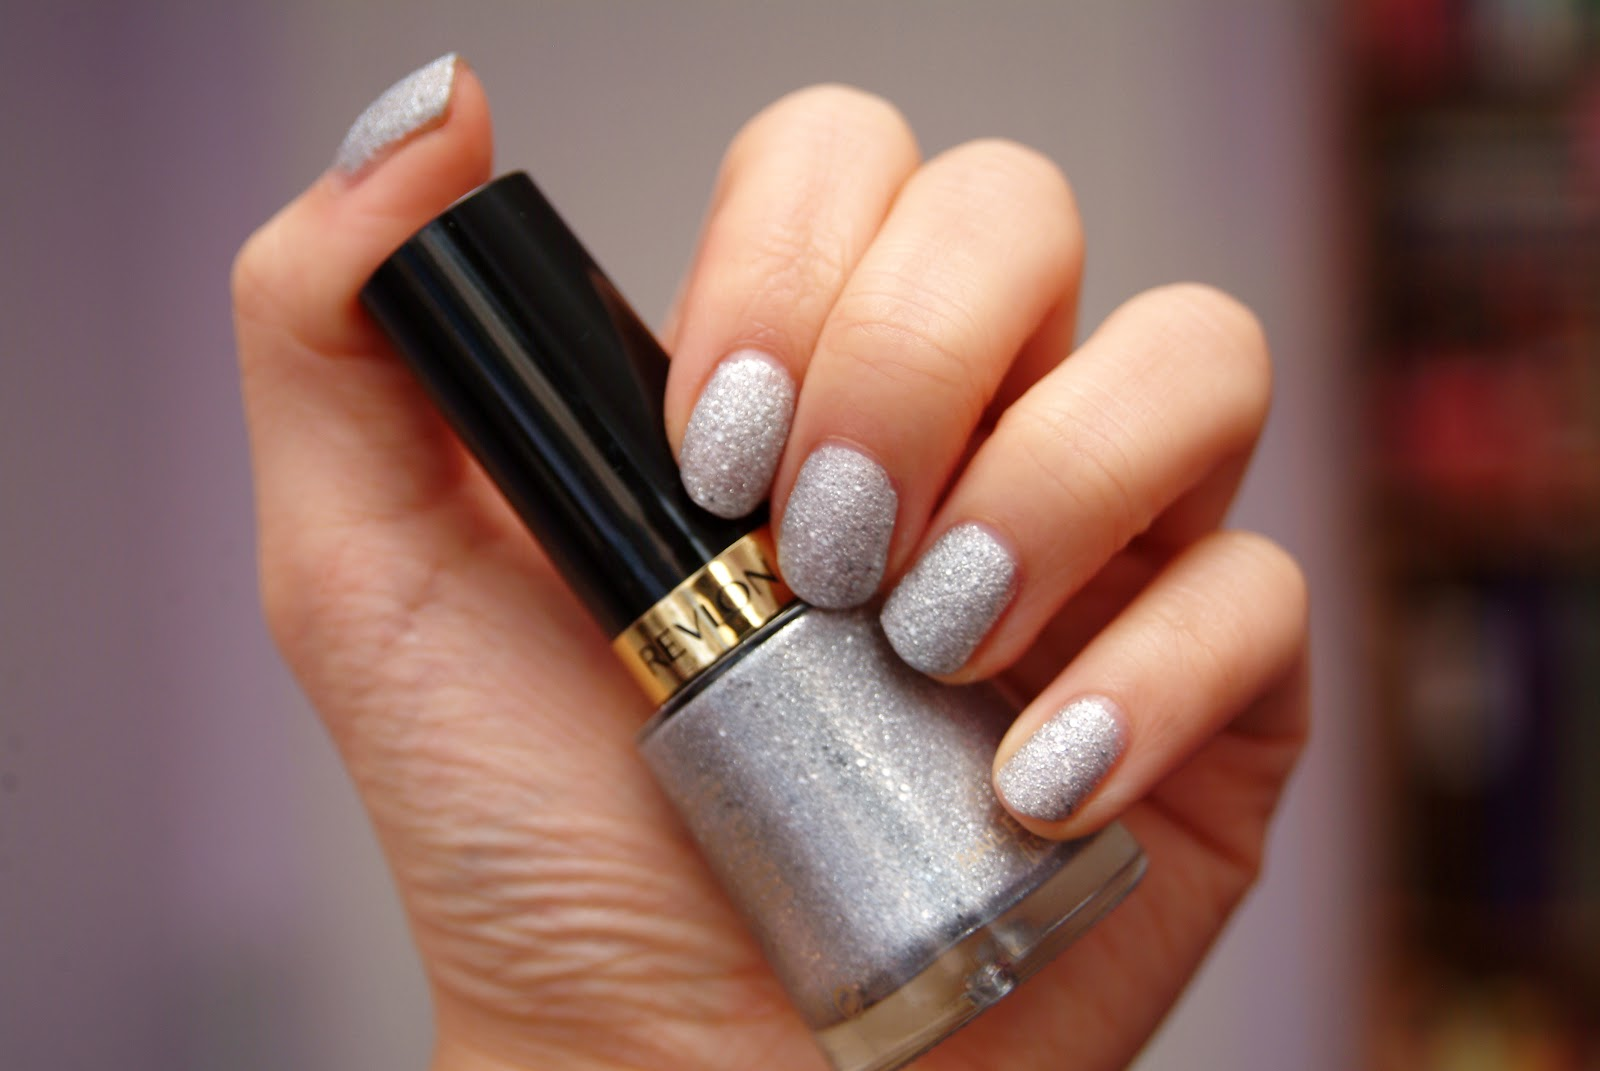 fun size beauty: Revlon Nail Lacquer in Diamond Texture